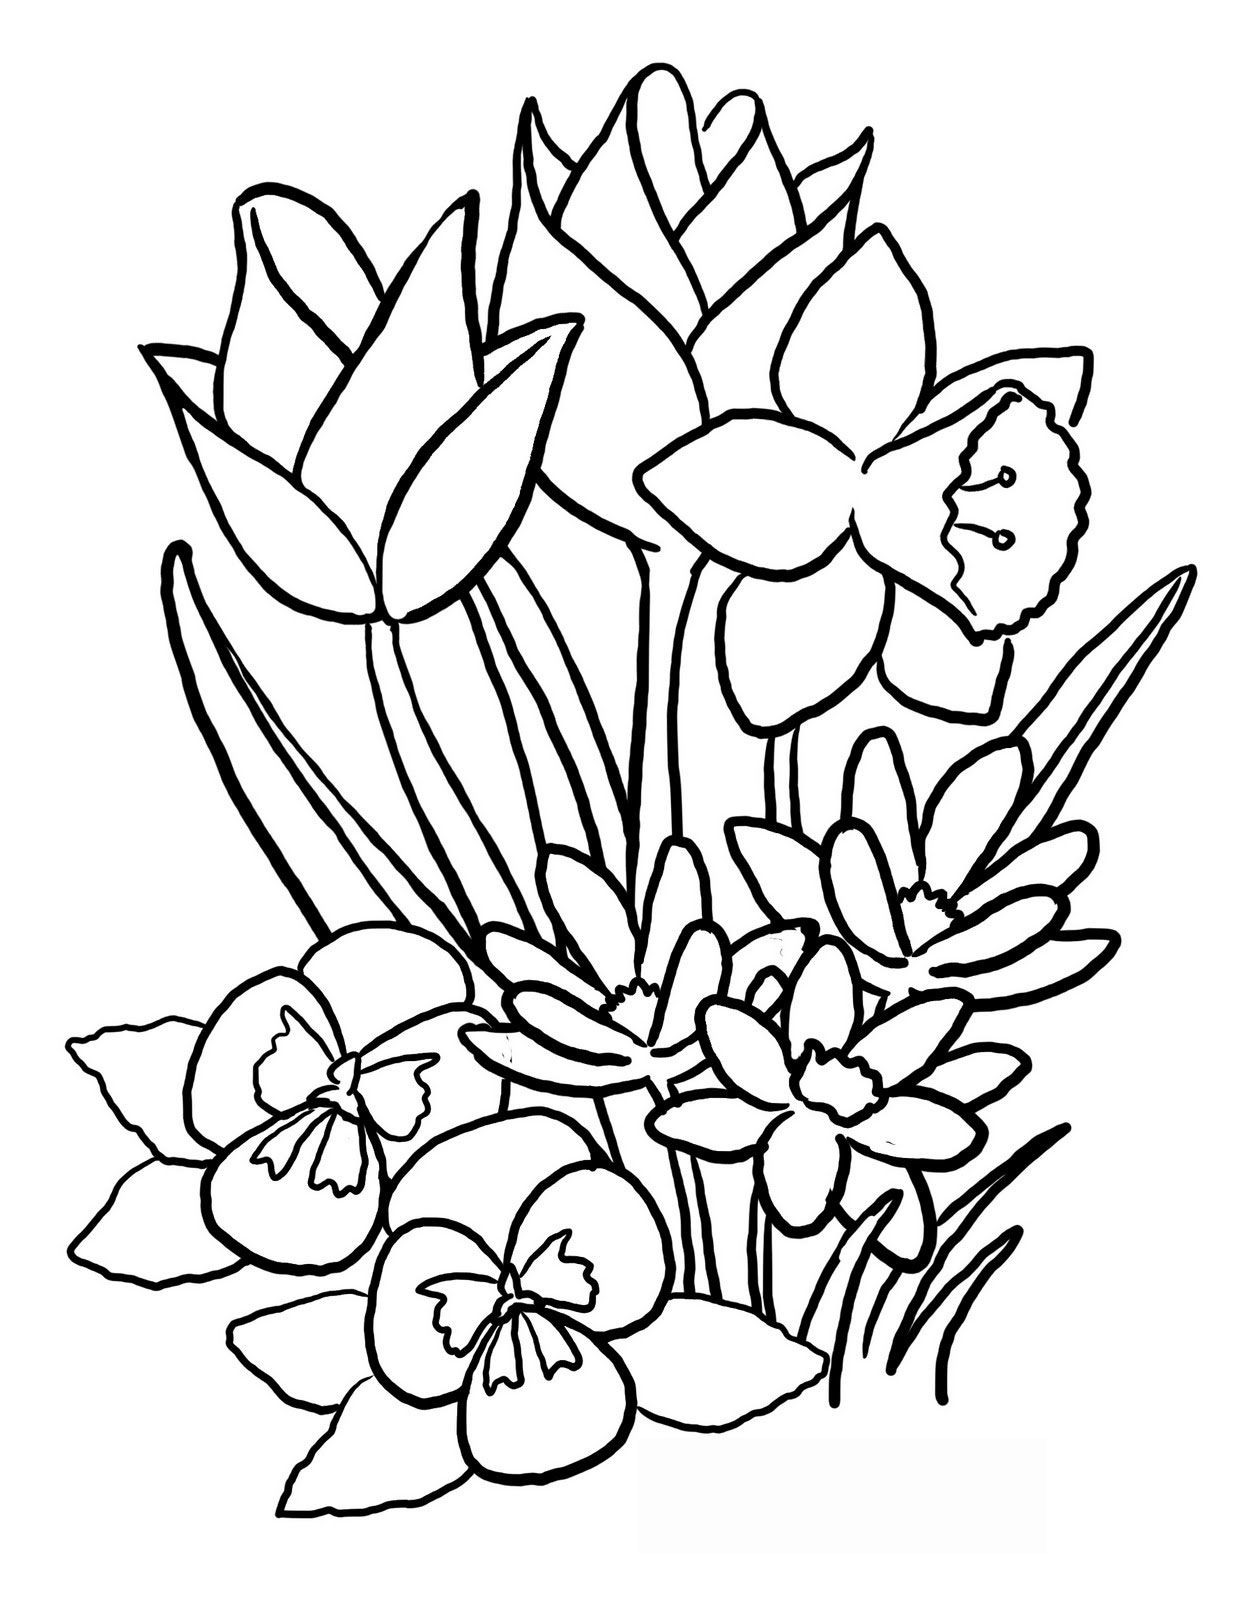 Free Coloring Pages Download Flower Printable For Of